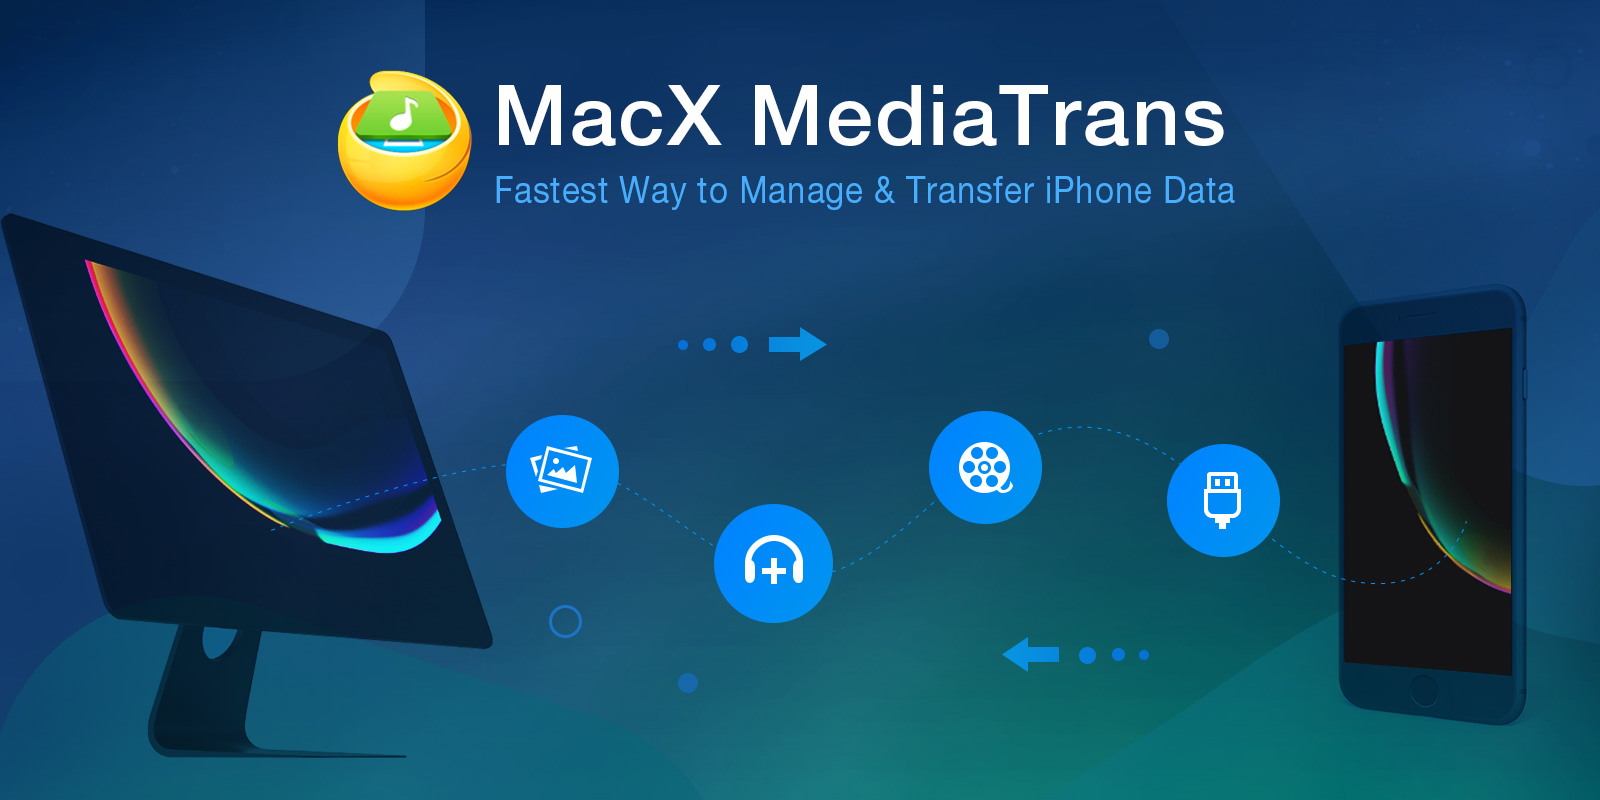 MacX MediaTrans Giveaway -Backup iPhone Photos, Music, Videos Free